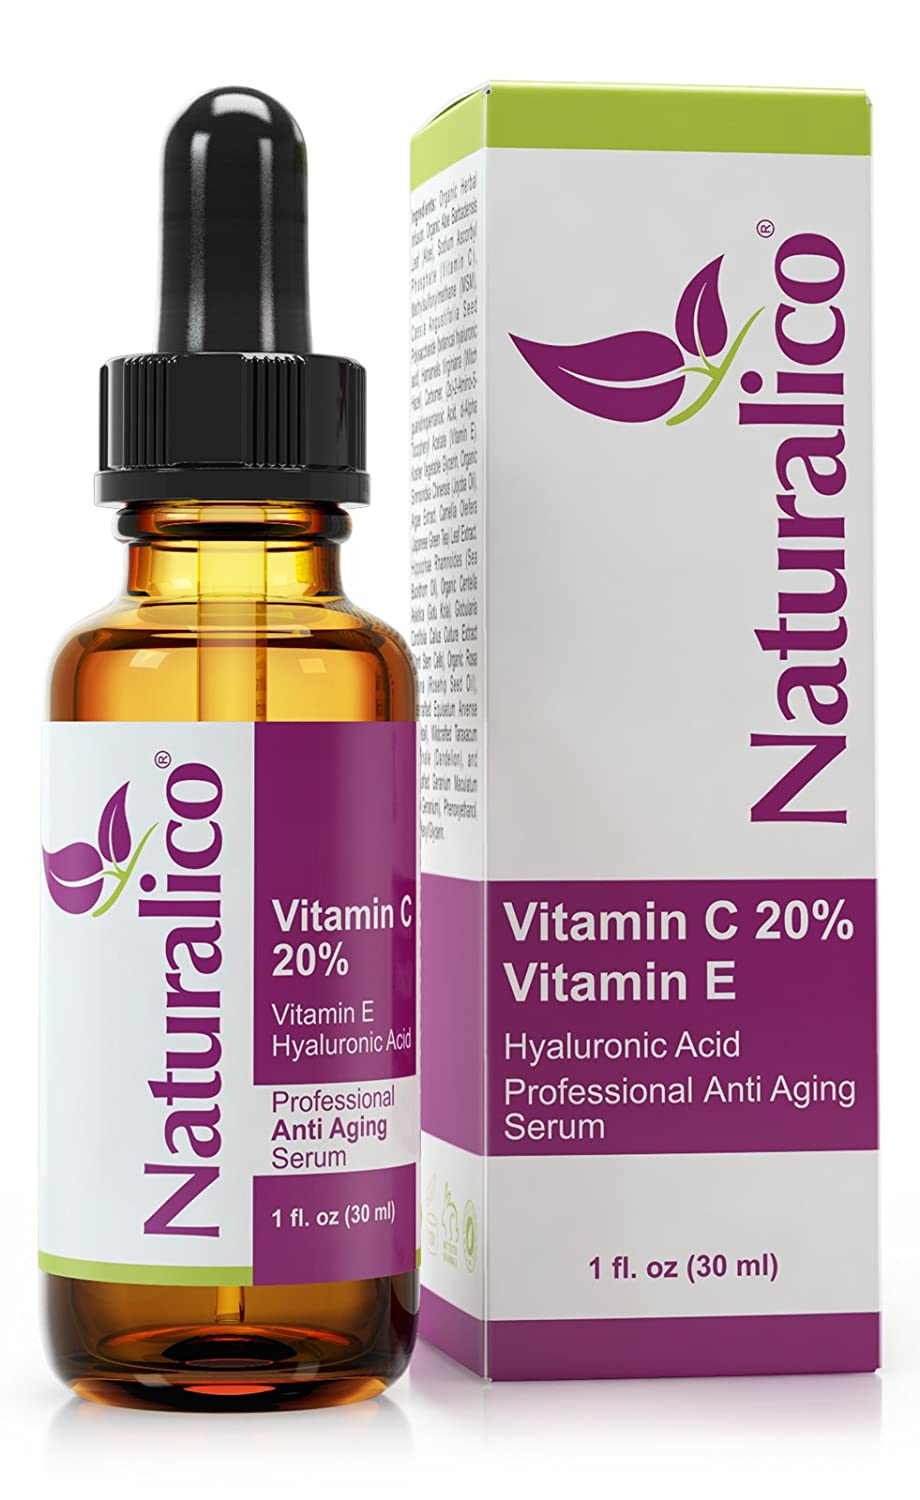 Naturalico Anti Aging Organic 20 Vitamin C Serum for Face with Hyaluronic Acid 1 Oz